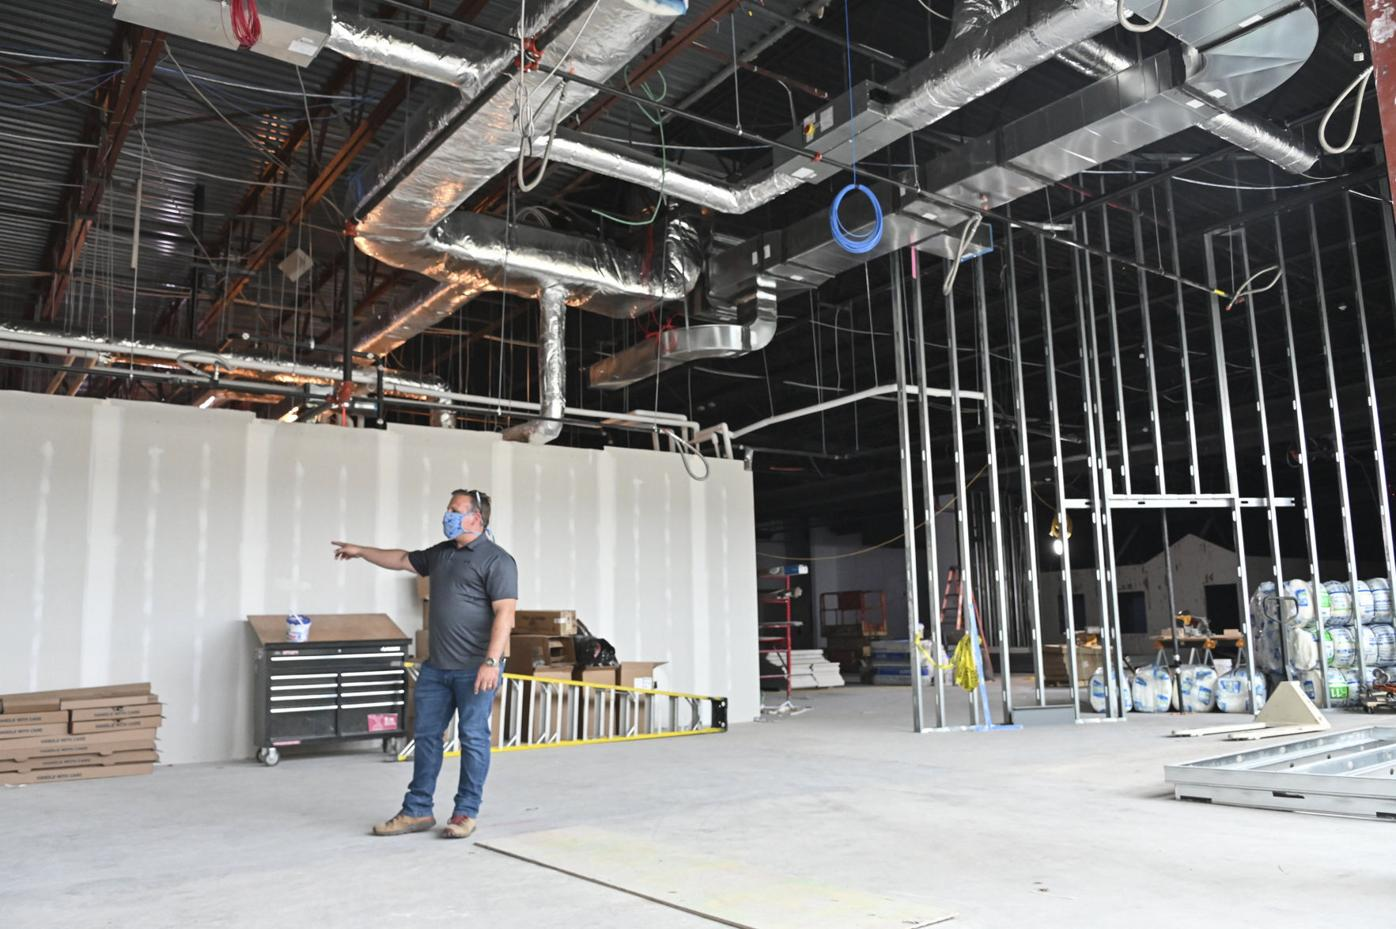 Work wrapping up on first phase of Geisinger space at marketplace